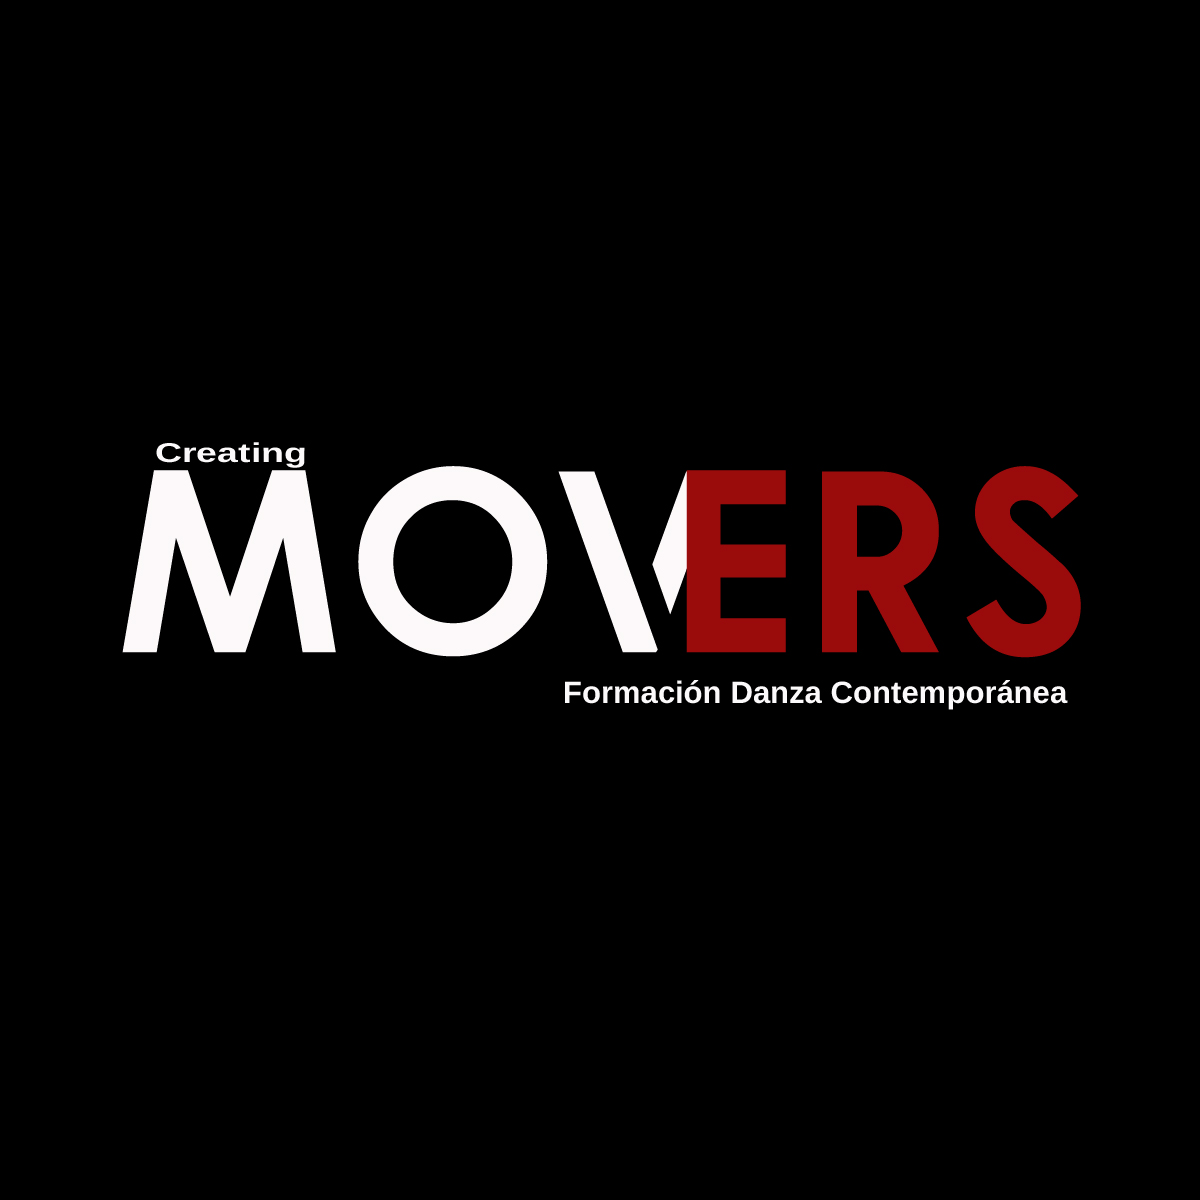 Creating Movers